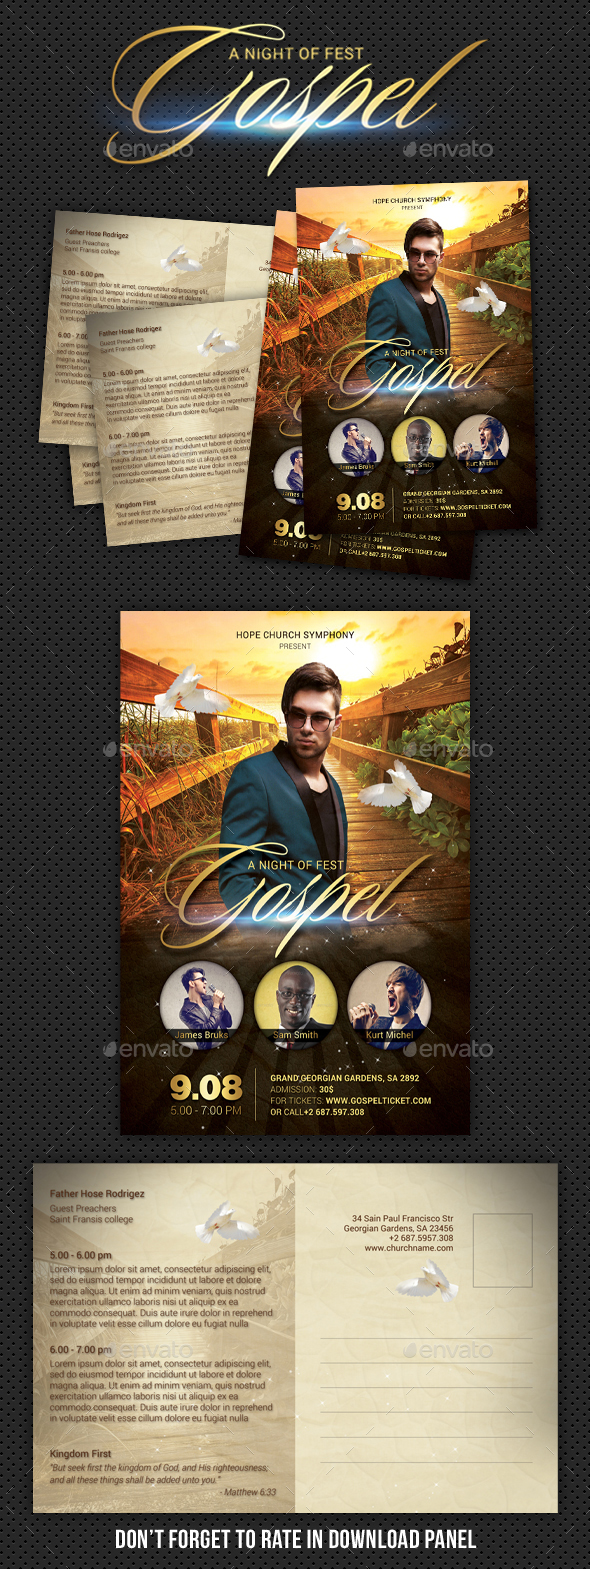 GraphicRiver Gospel Fest Postcard 20462162